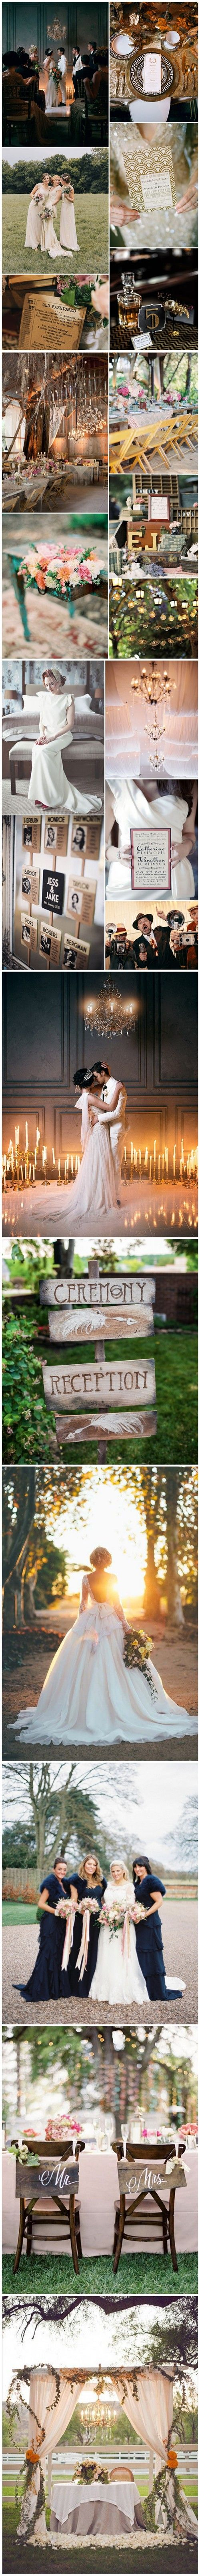 Wedding trends 2015 1920s and 30s vintage wedding ideas wedding trends 2015 1920s and 30s vintage wedding ideas junglespirit Choice Image